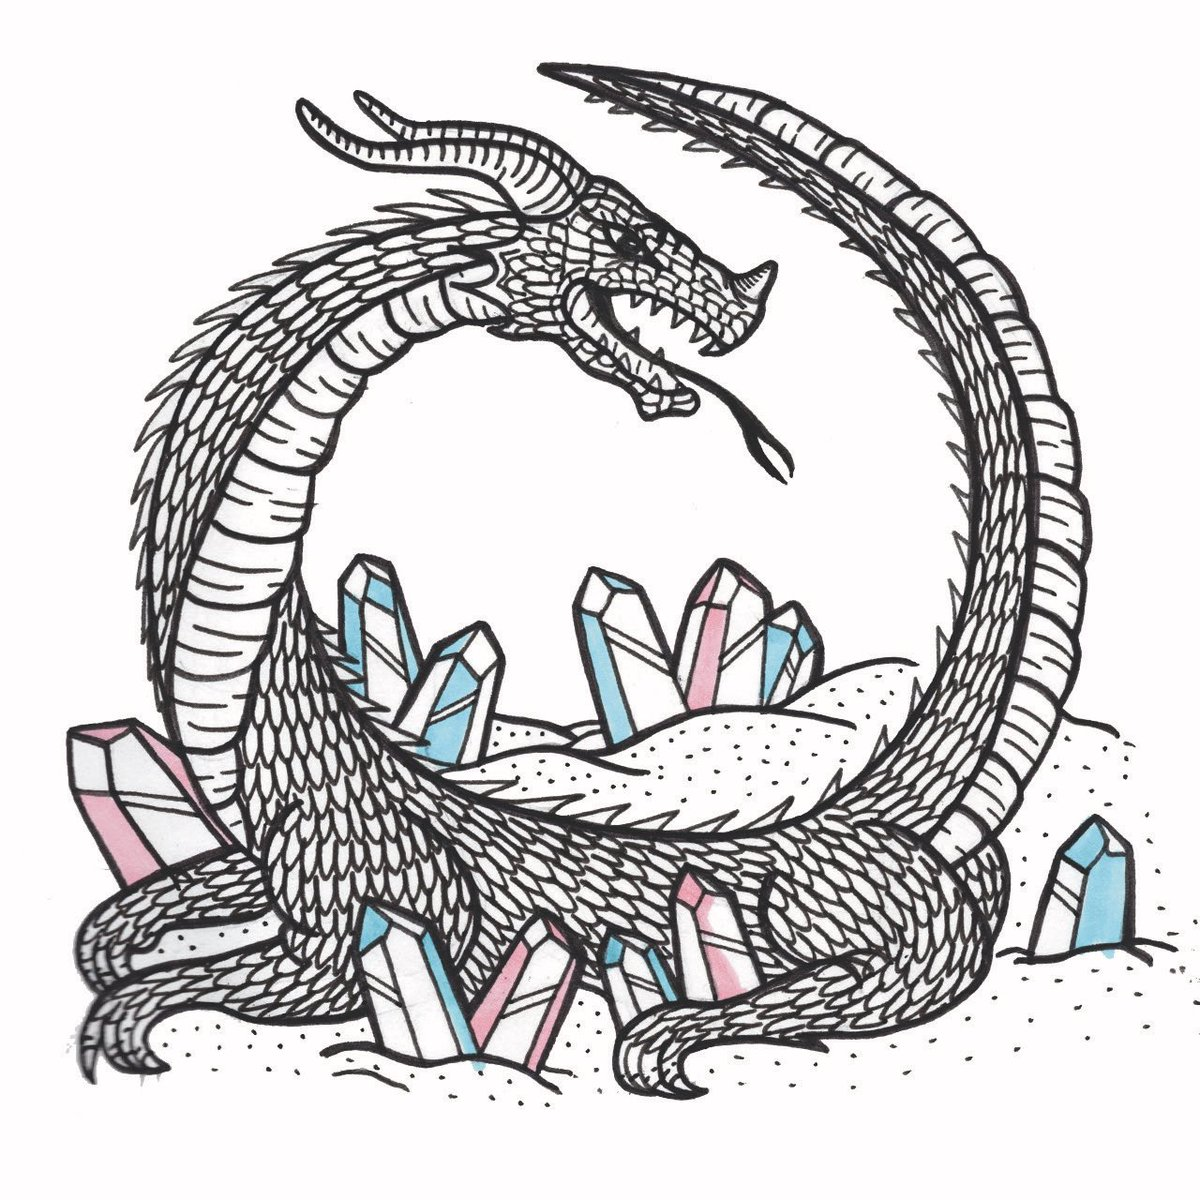 On the lounging dragon and its crystals. #crystals #drawing